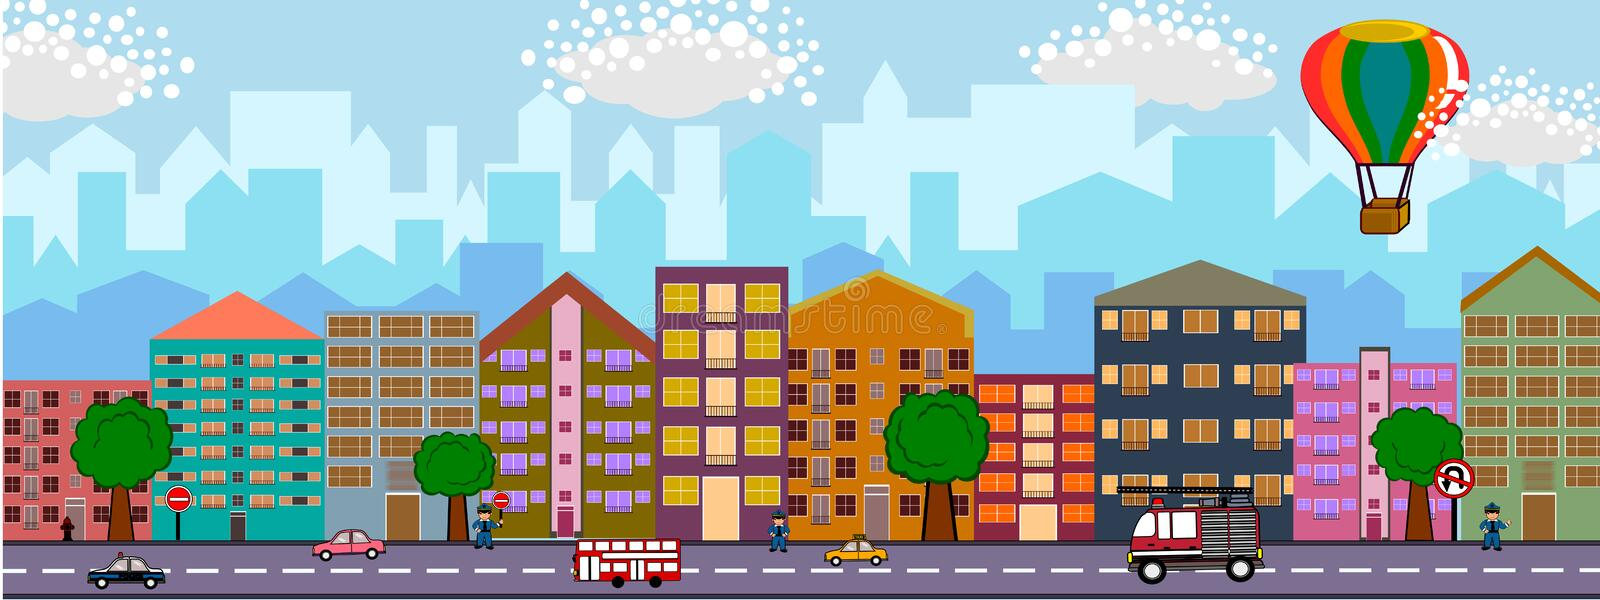 City skyline. Concept illustrations in detail